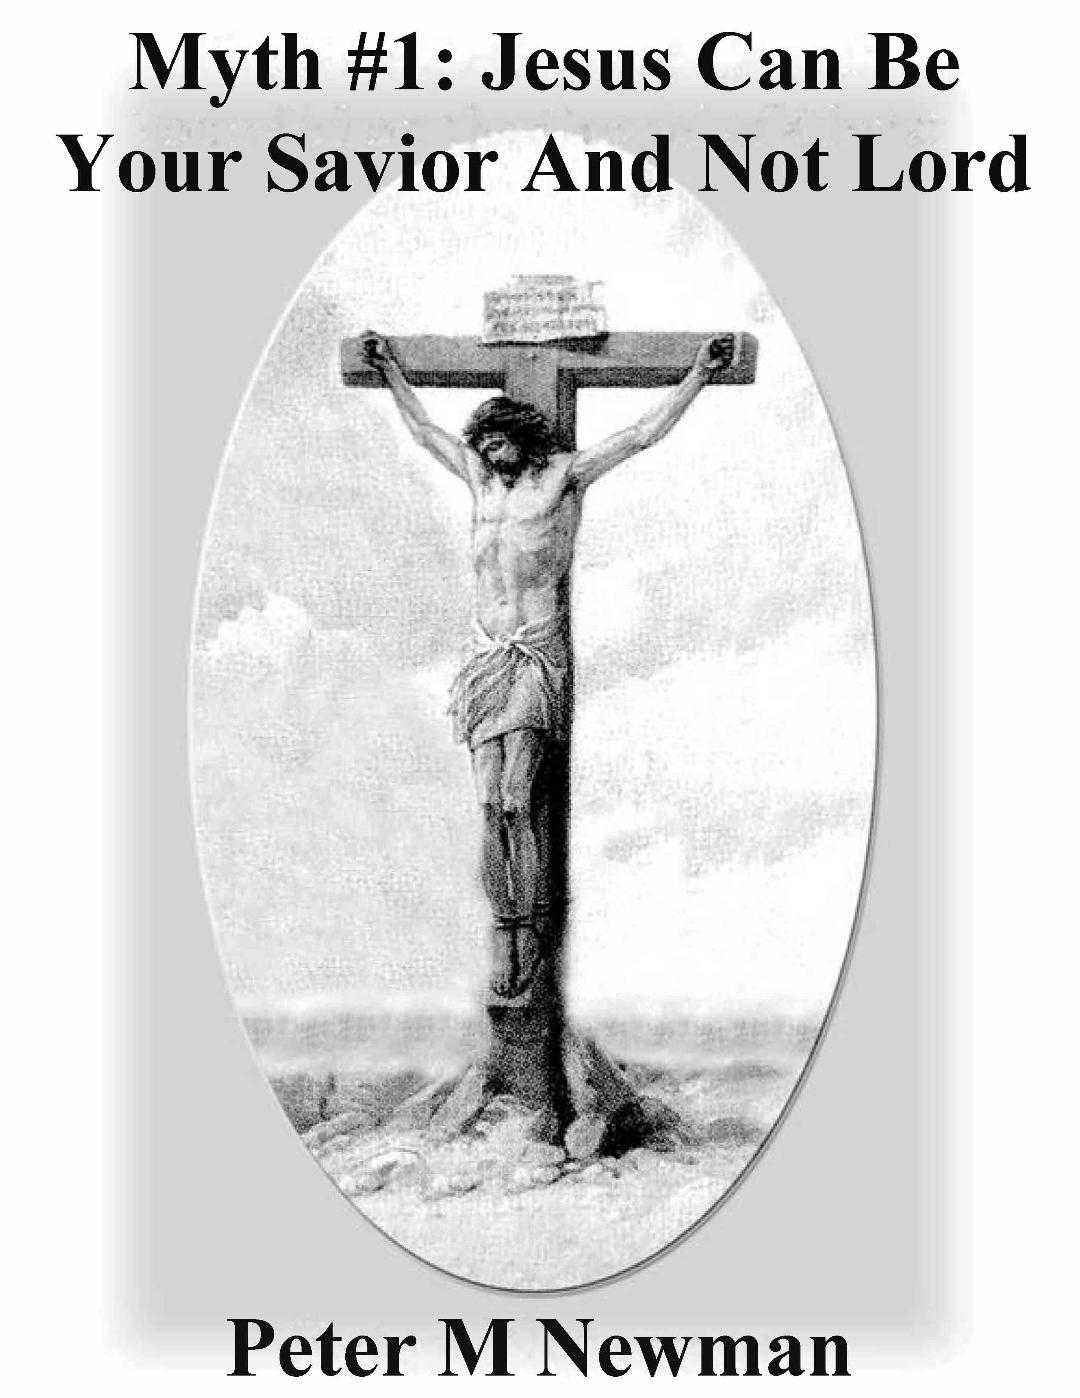 Jesus Can Be Your Savior and Not Your Lord – Myth #1